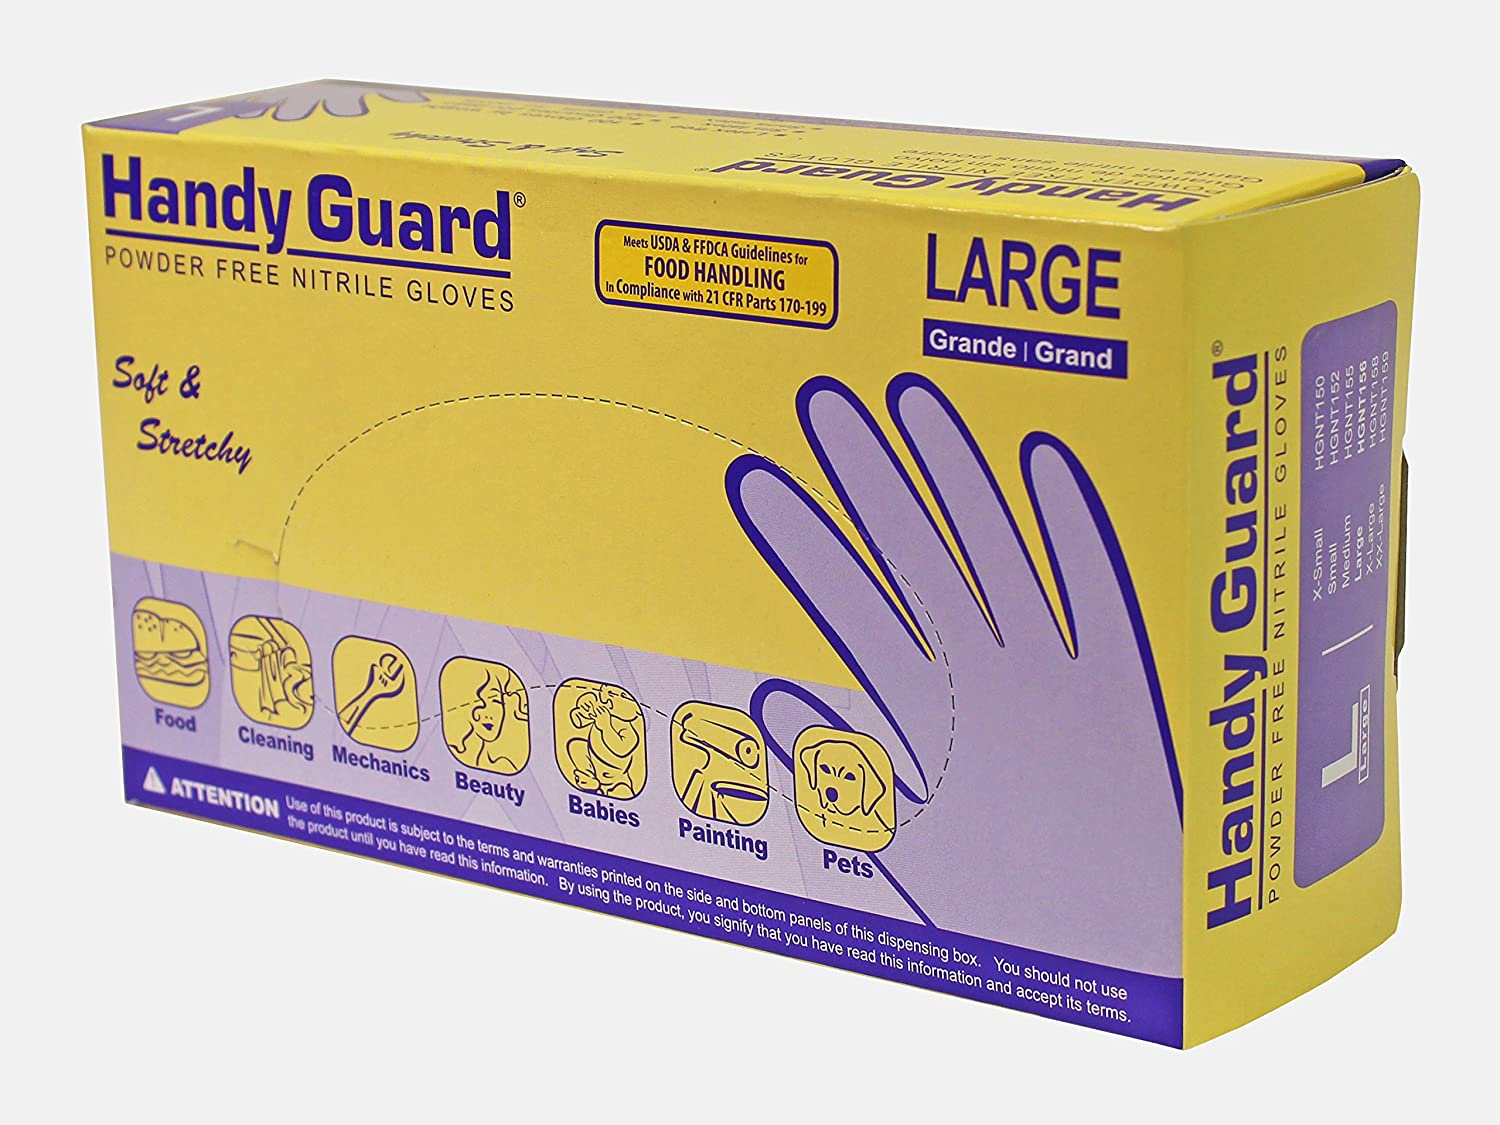 Adenna Handy Guard 3.5 mil Nitrile Powder Free Gloves (Violet, Large) Box of 100